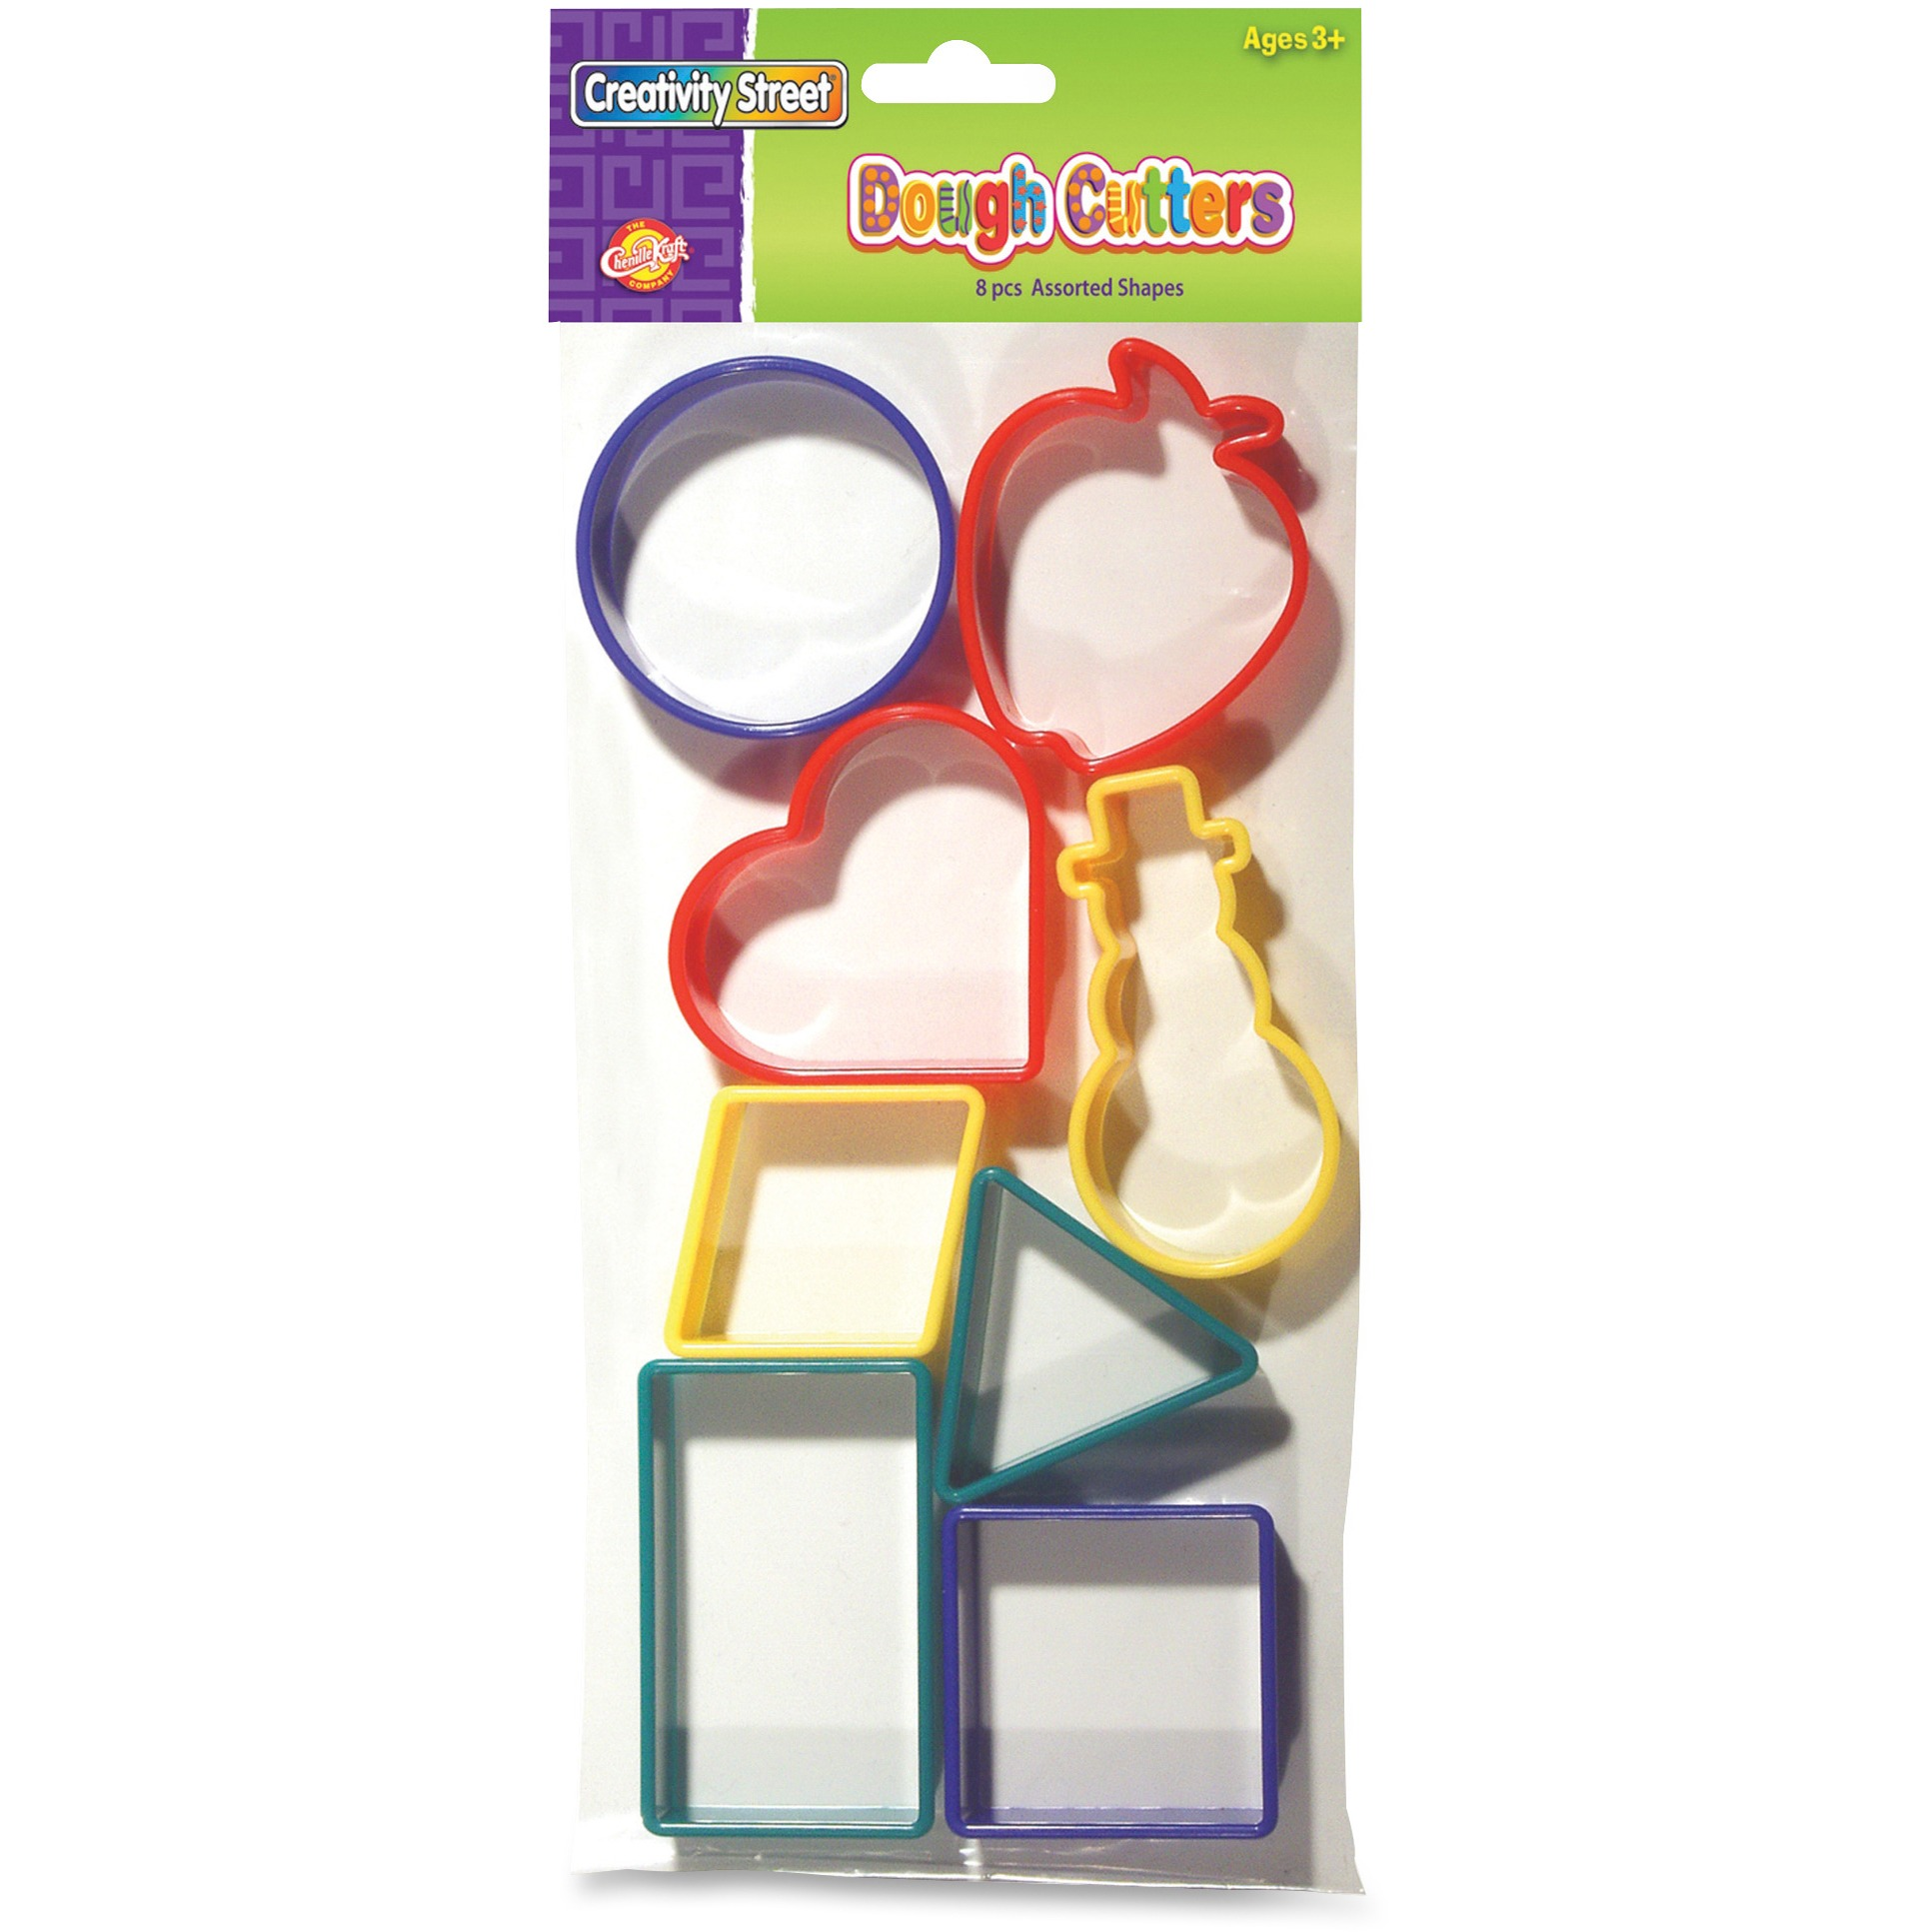 Creativity Street 8-Piece Shapes Dough Cutters, Assorted, 8 / Set (Quantity)